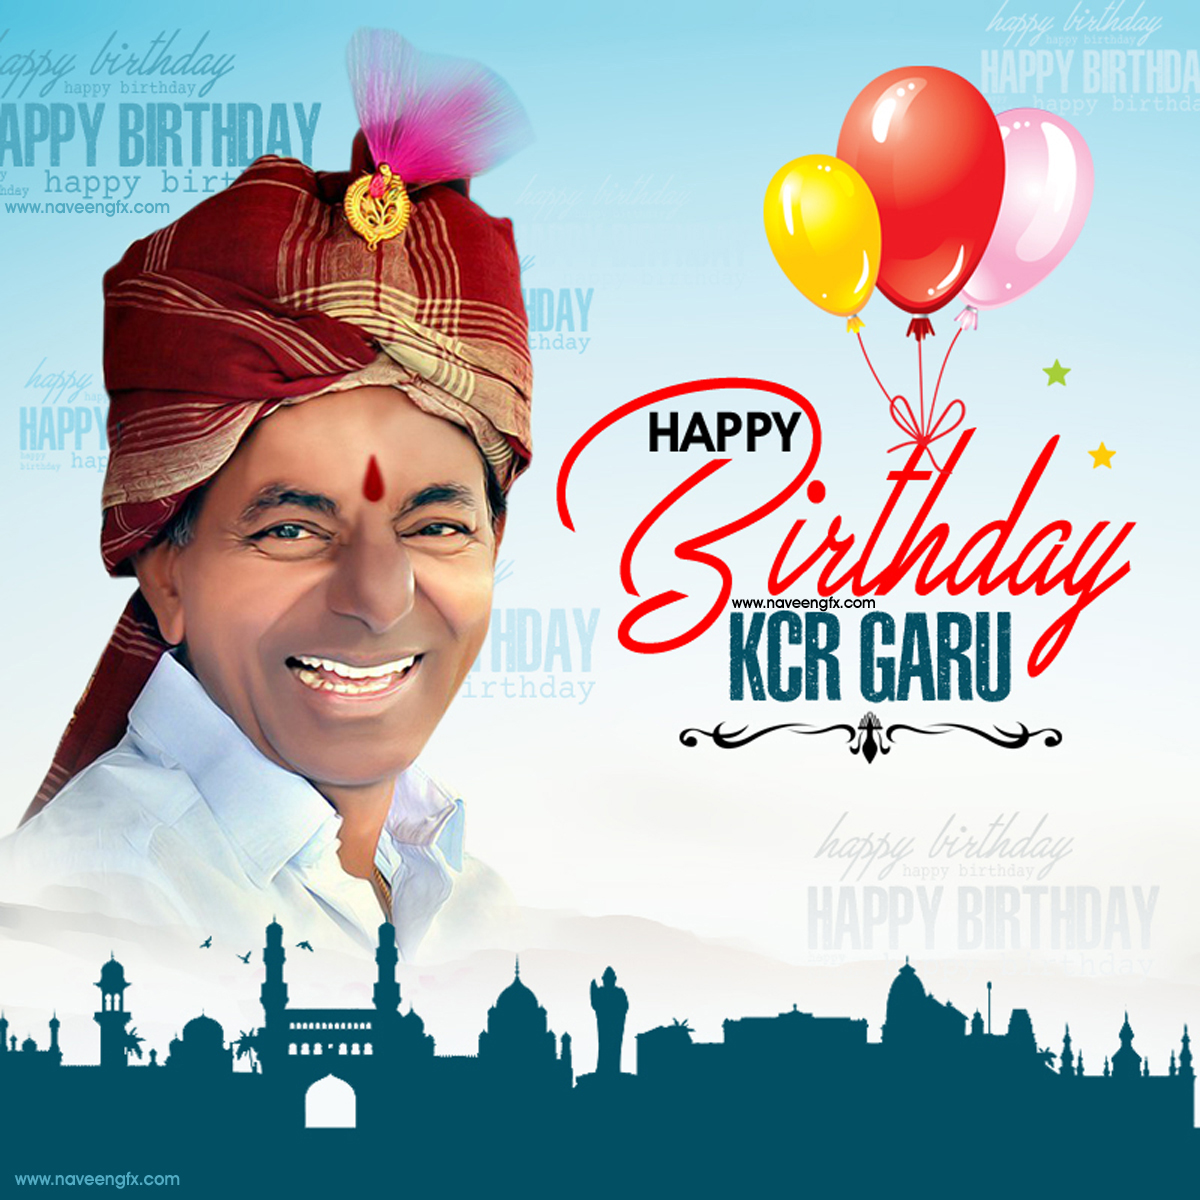 B day poster designs - Kcr Birthday Wishes Greetings Poster Wallpapers Images Photos